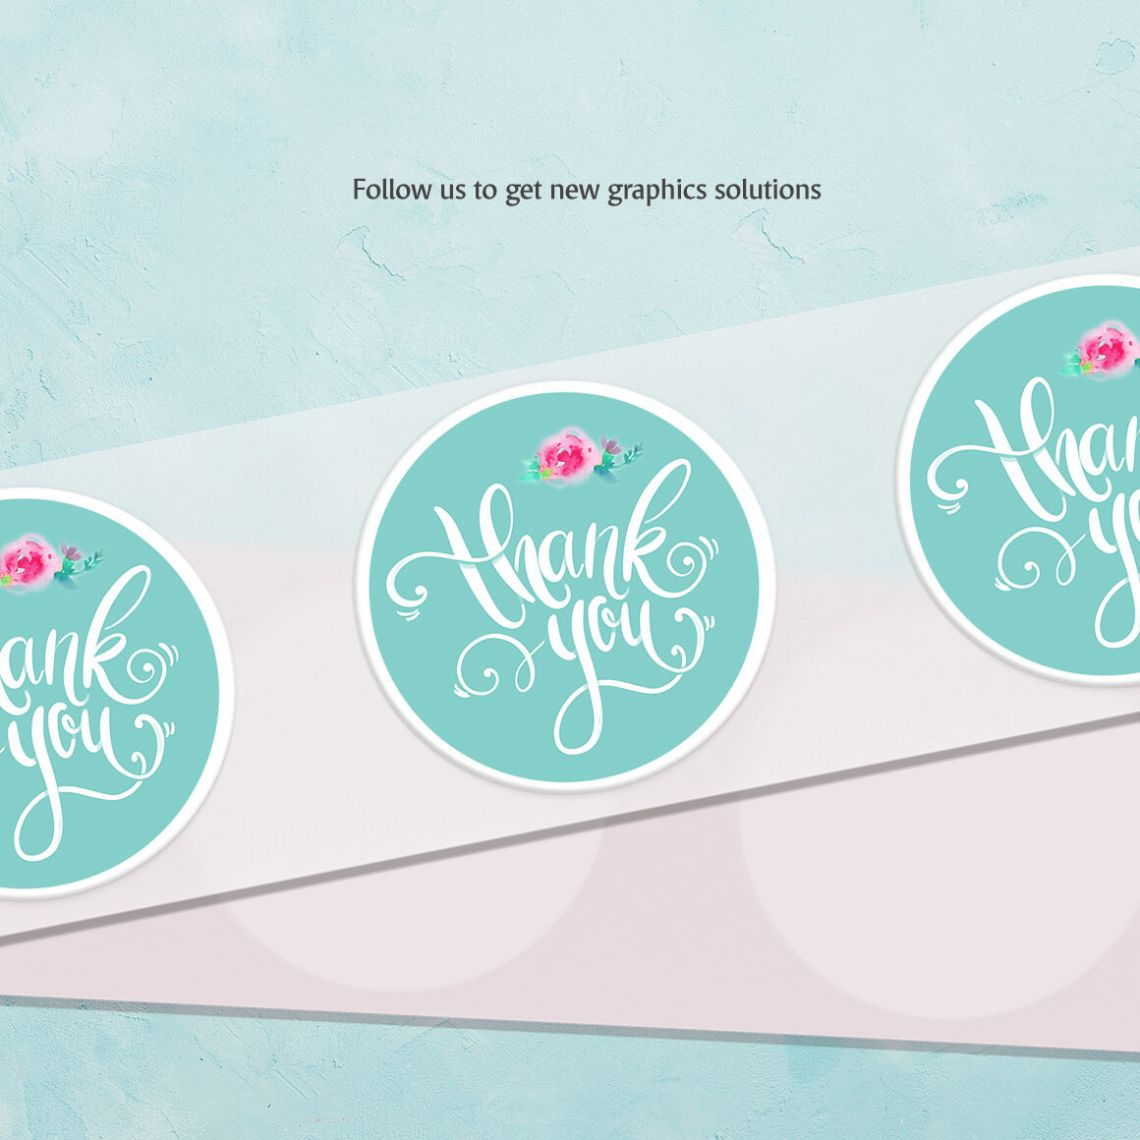 Download Rounded Business Card Mockup Psd Free Download Yellowimages